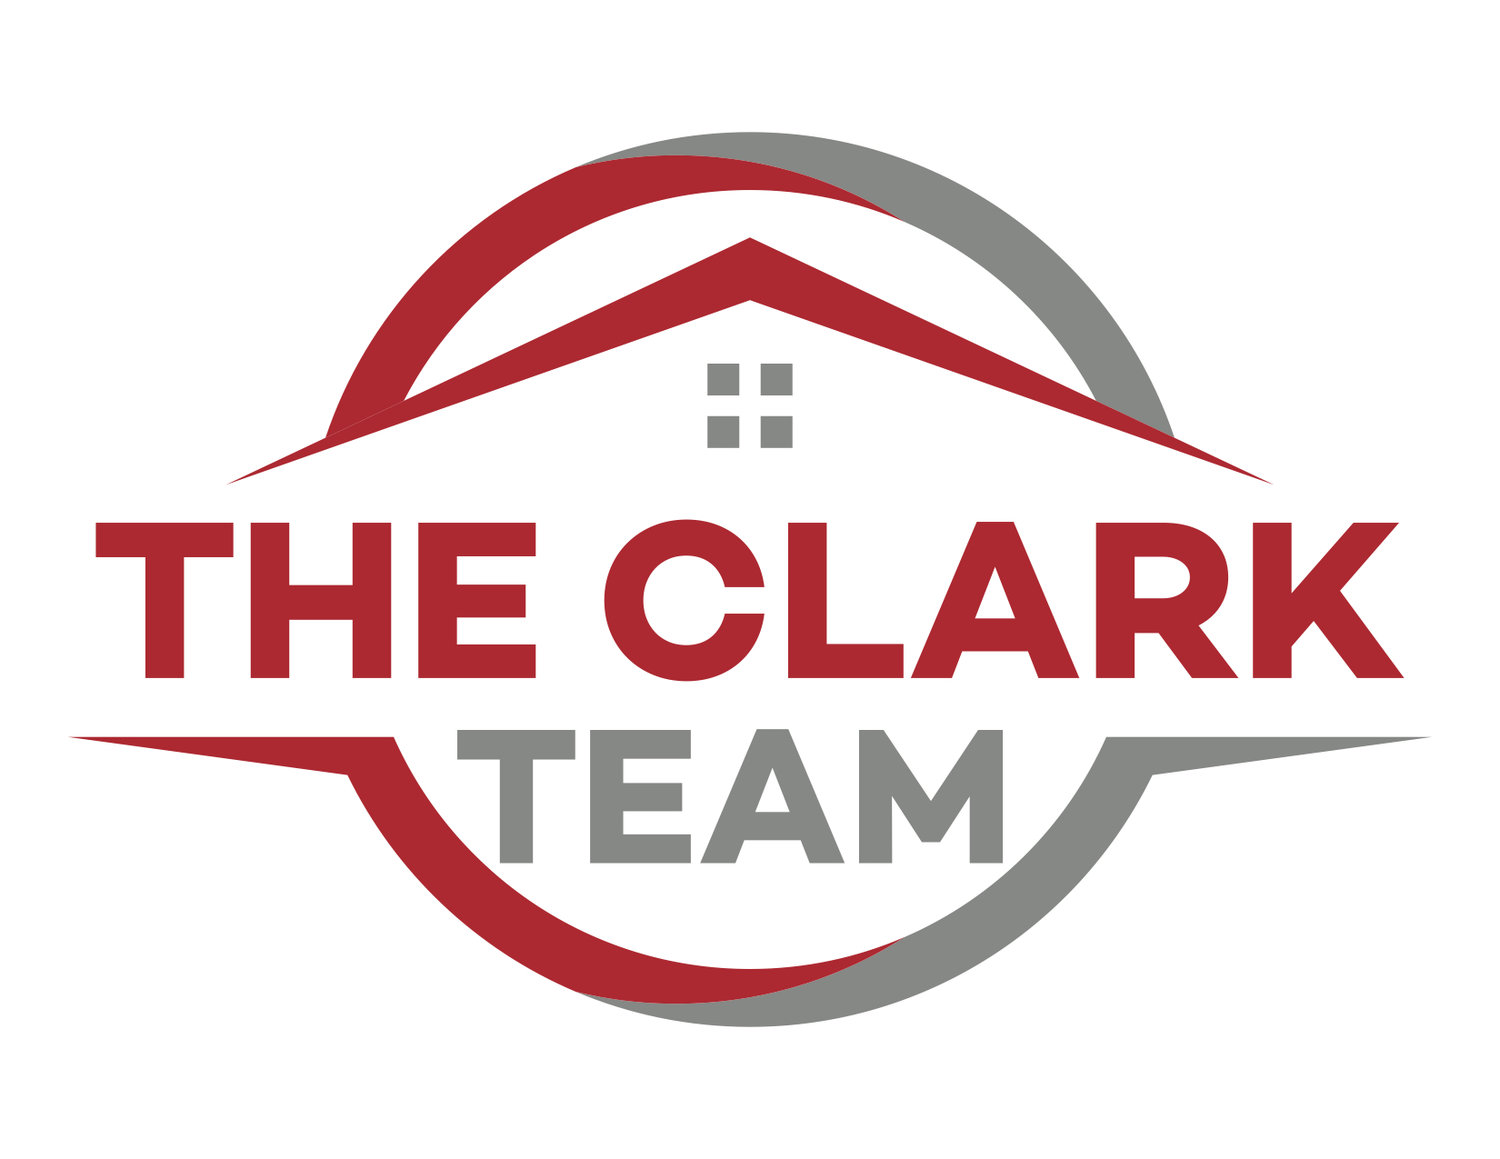 The Brandon Clark Team